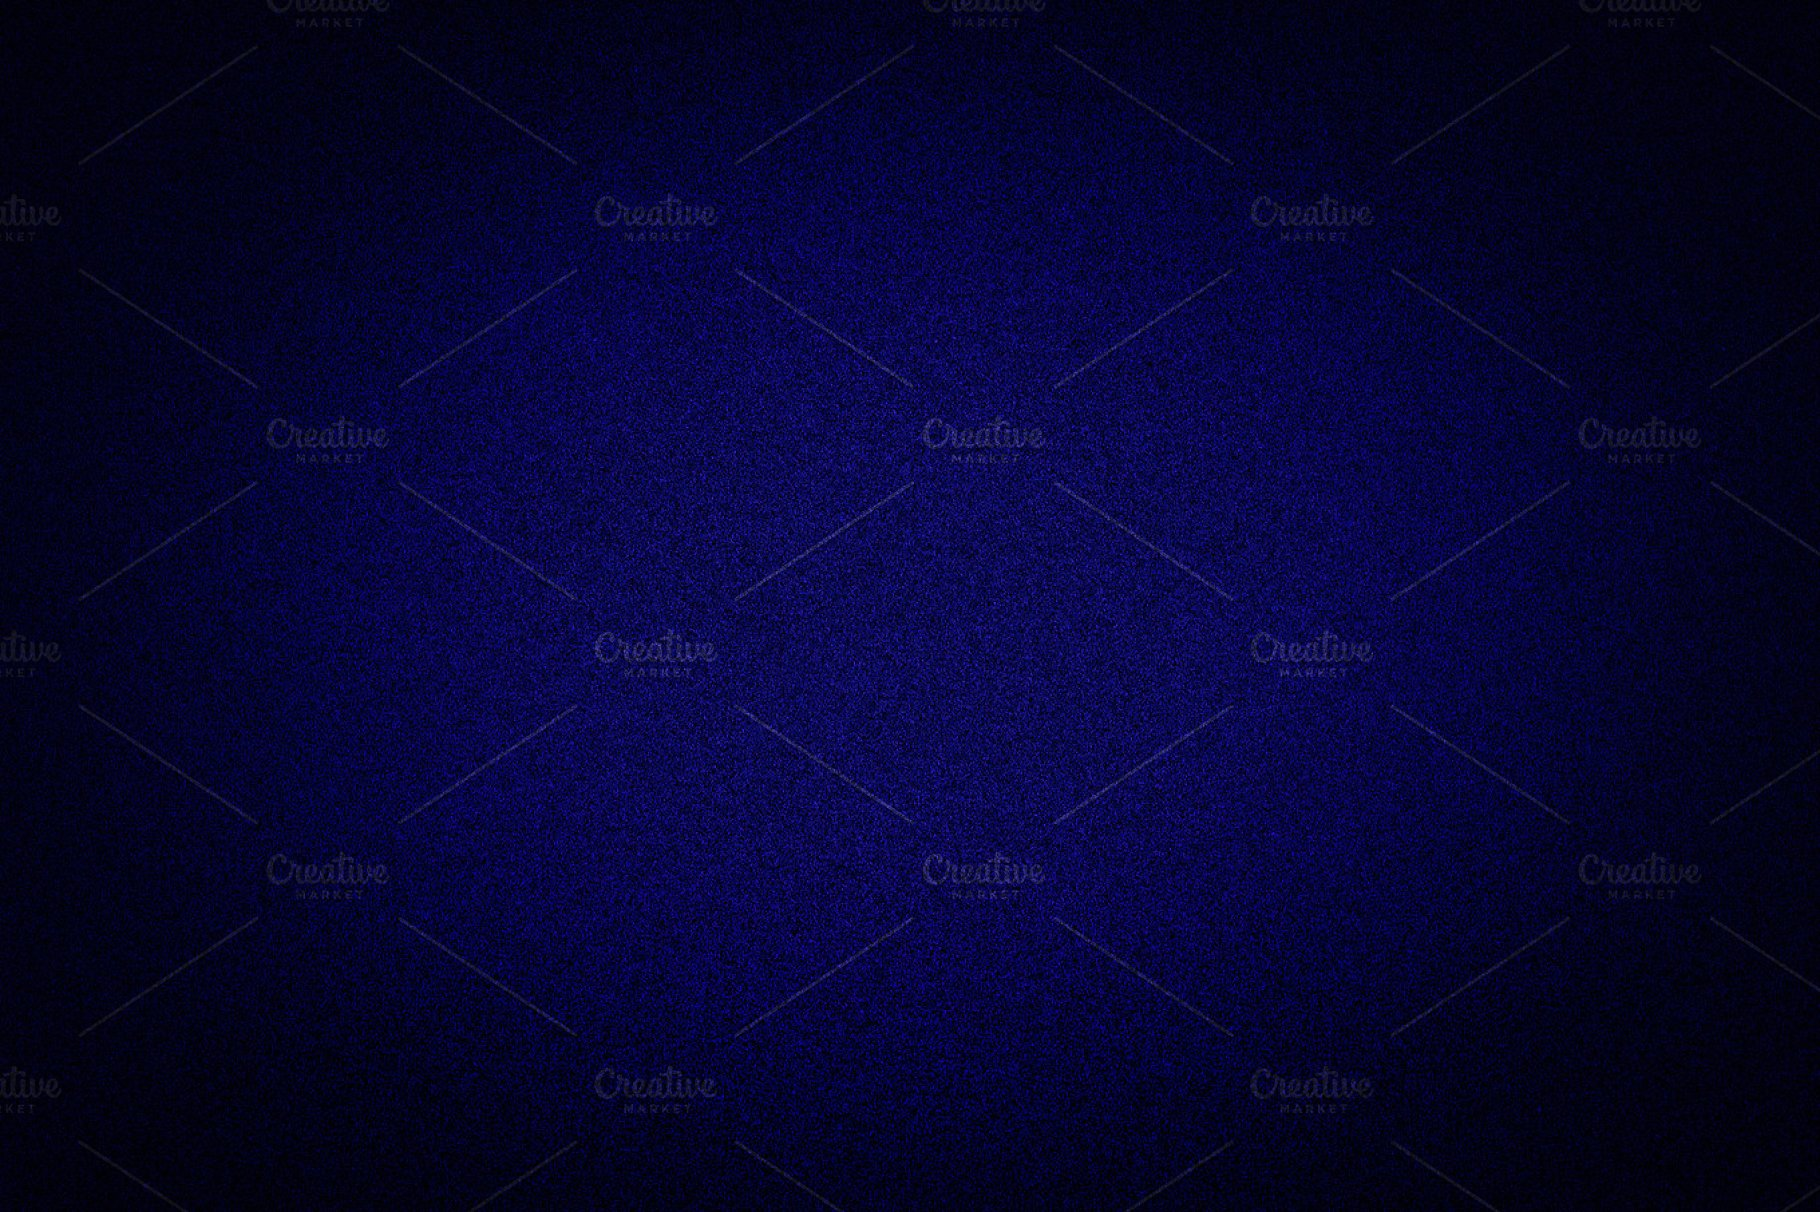 Dark blue background with shiny speckles